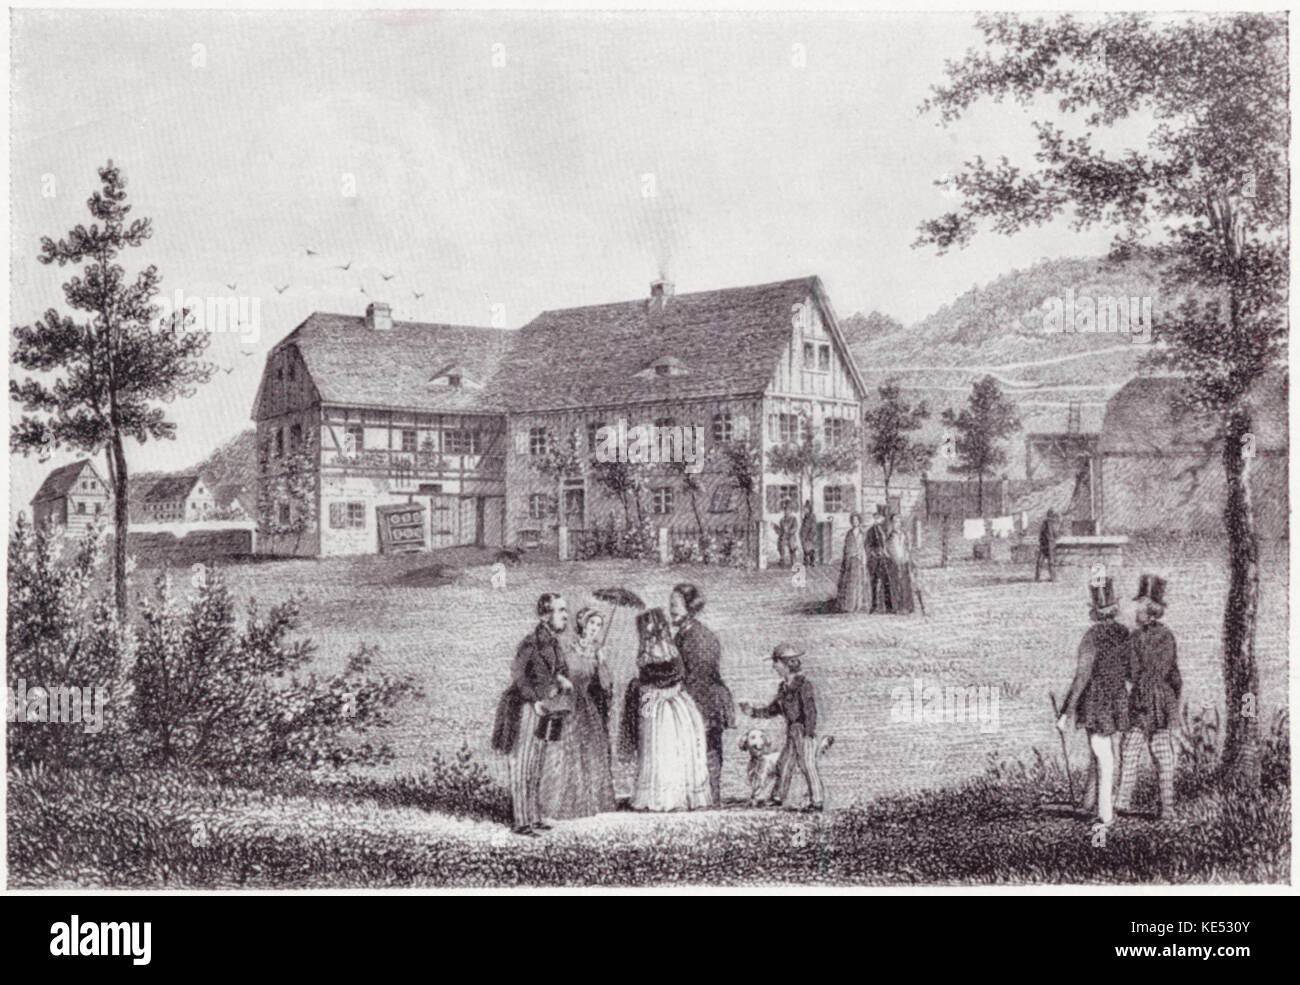 Carl Maria von Weber 's summer residence in Klein-Hosterwitz, Germany. CMvW, German composer: 18 November 1786 - Stock Image